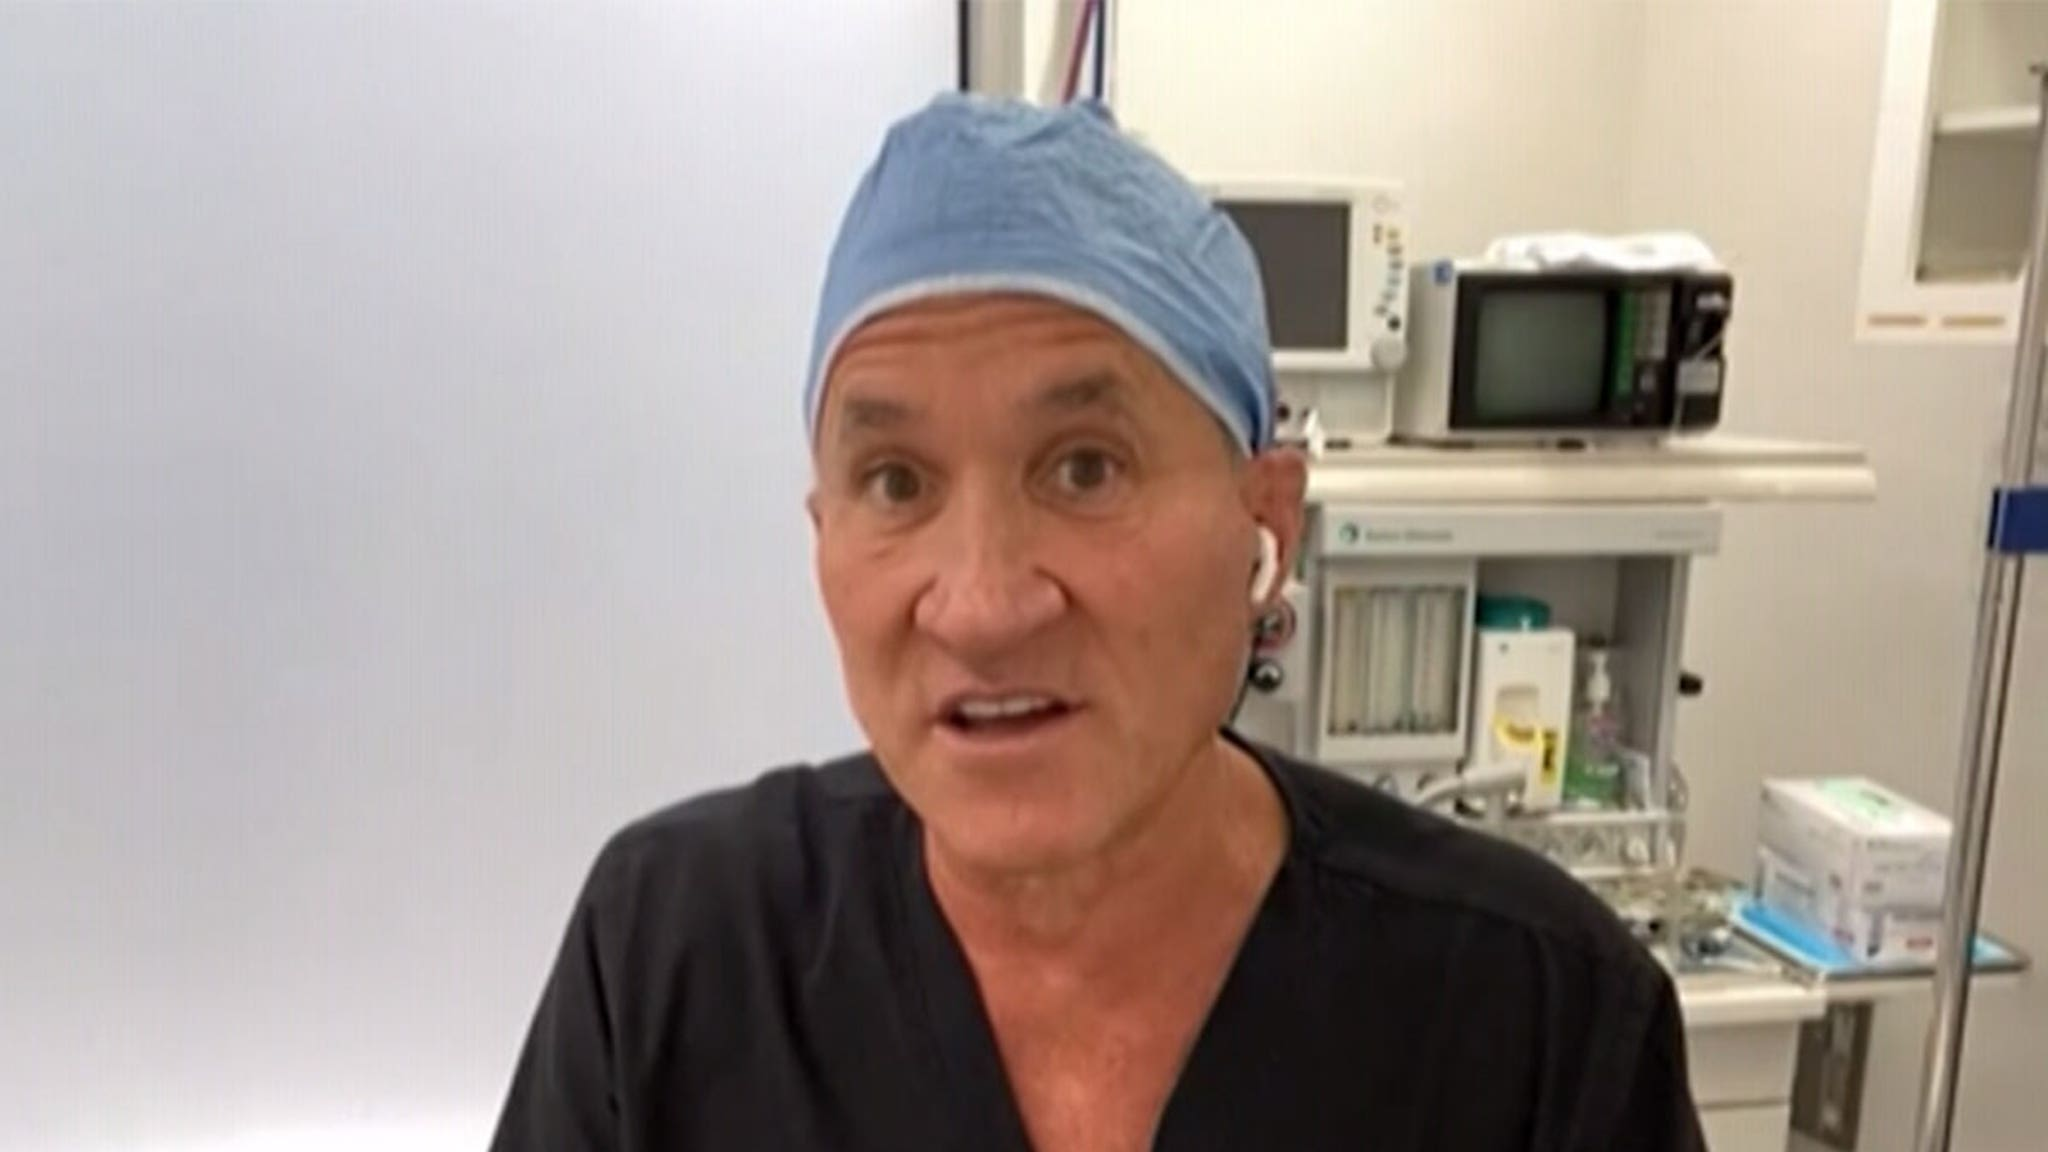 'License to Kill' Host Terry Dubrow Warns About Doctors Going Off Deep End thumbnail